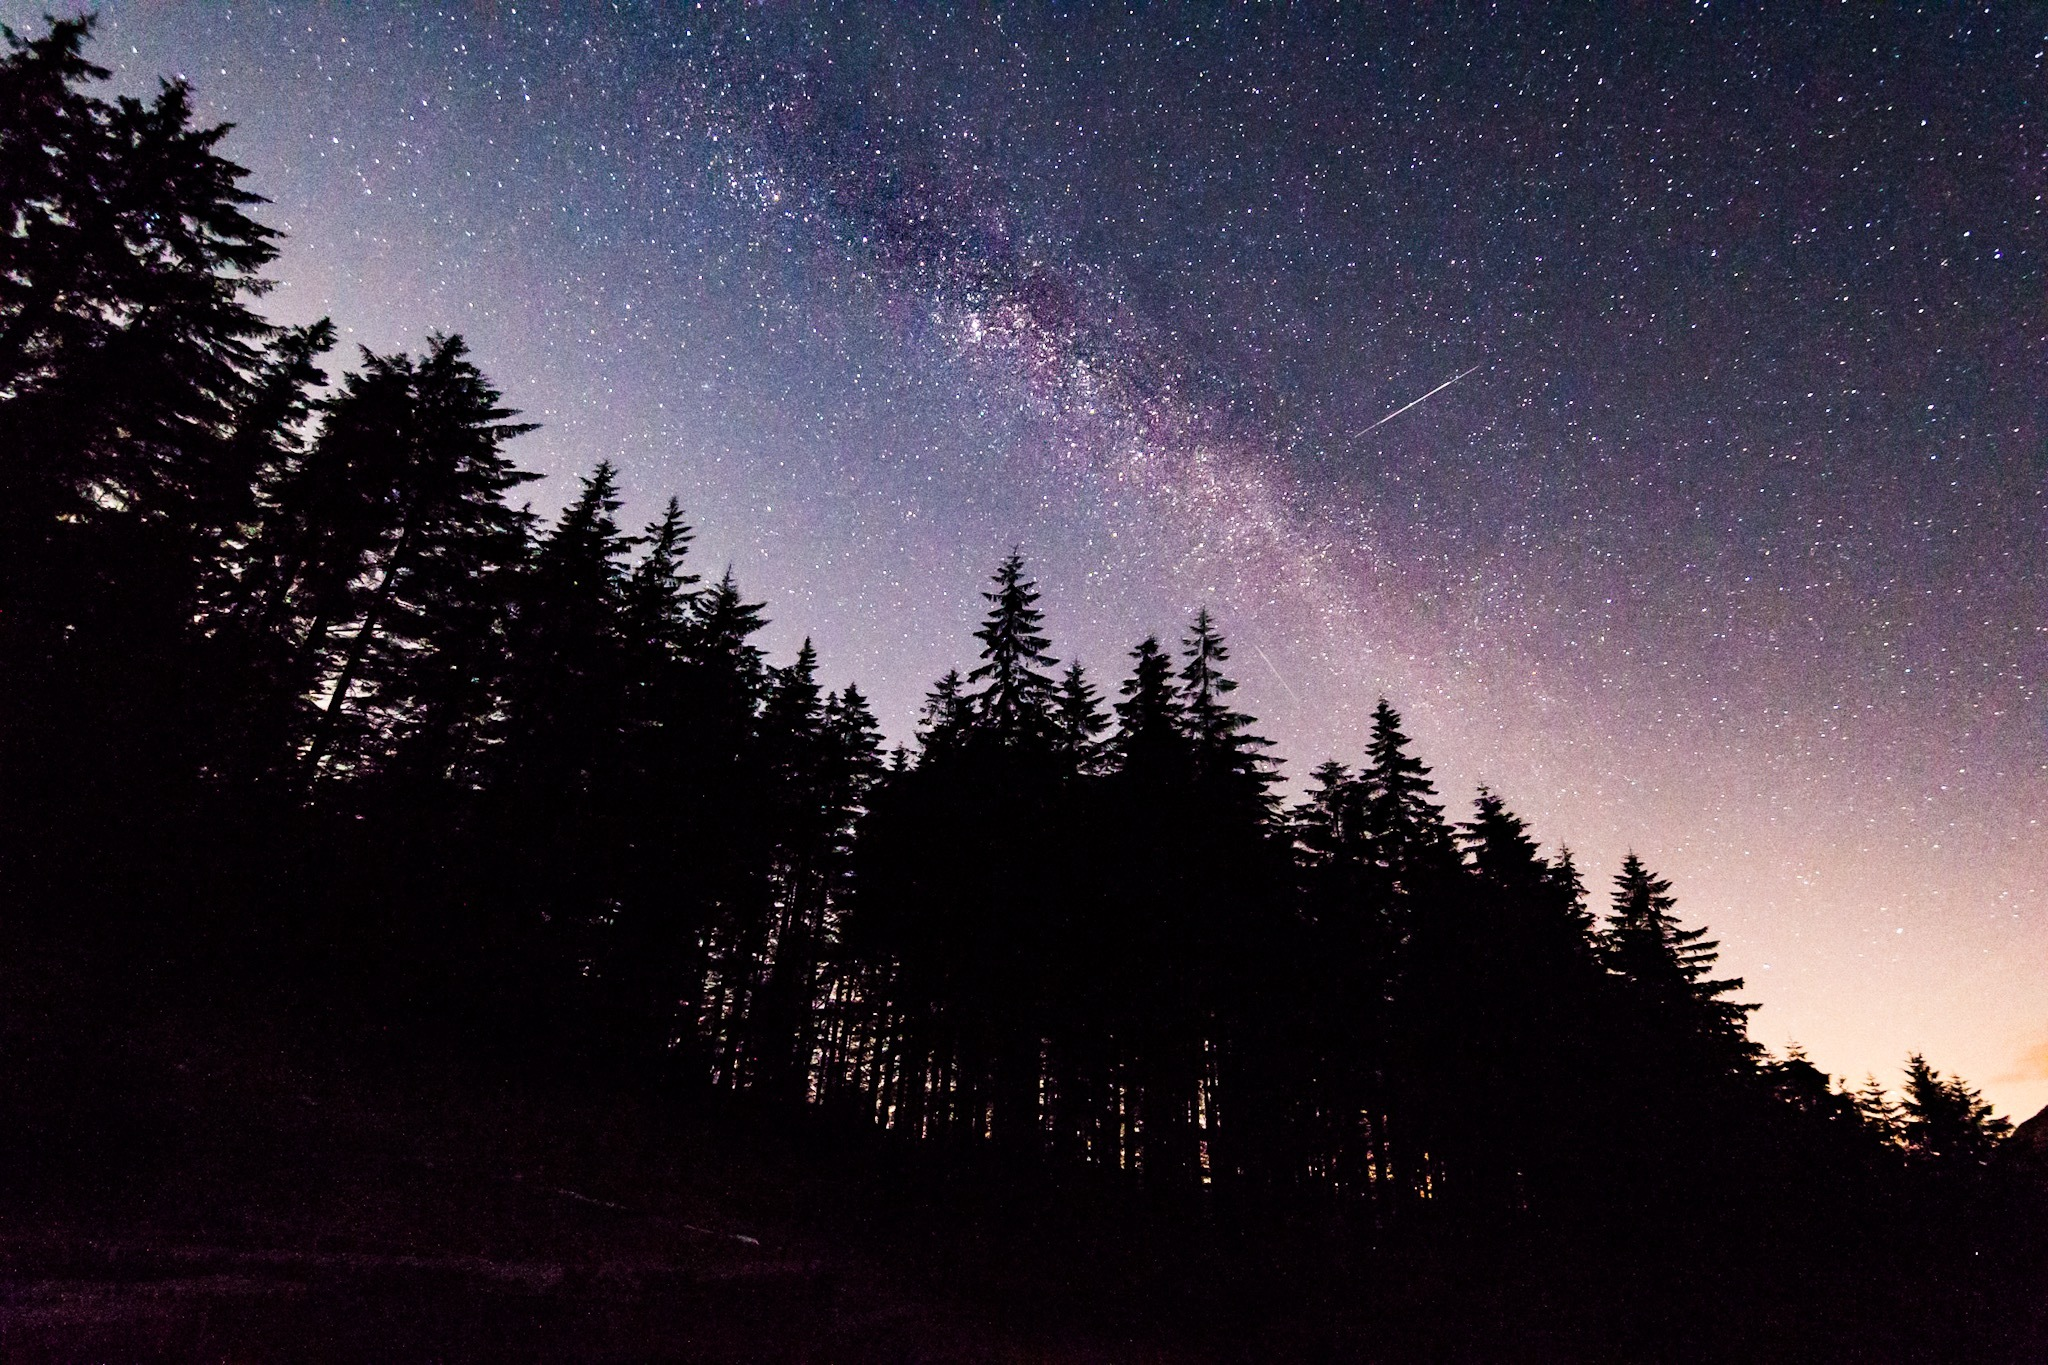 Courtney captures the Milky Way